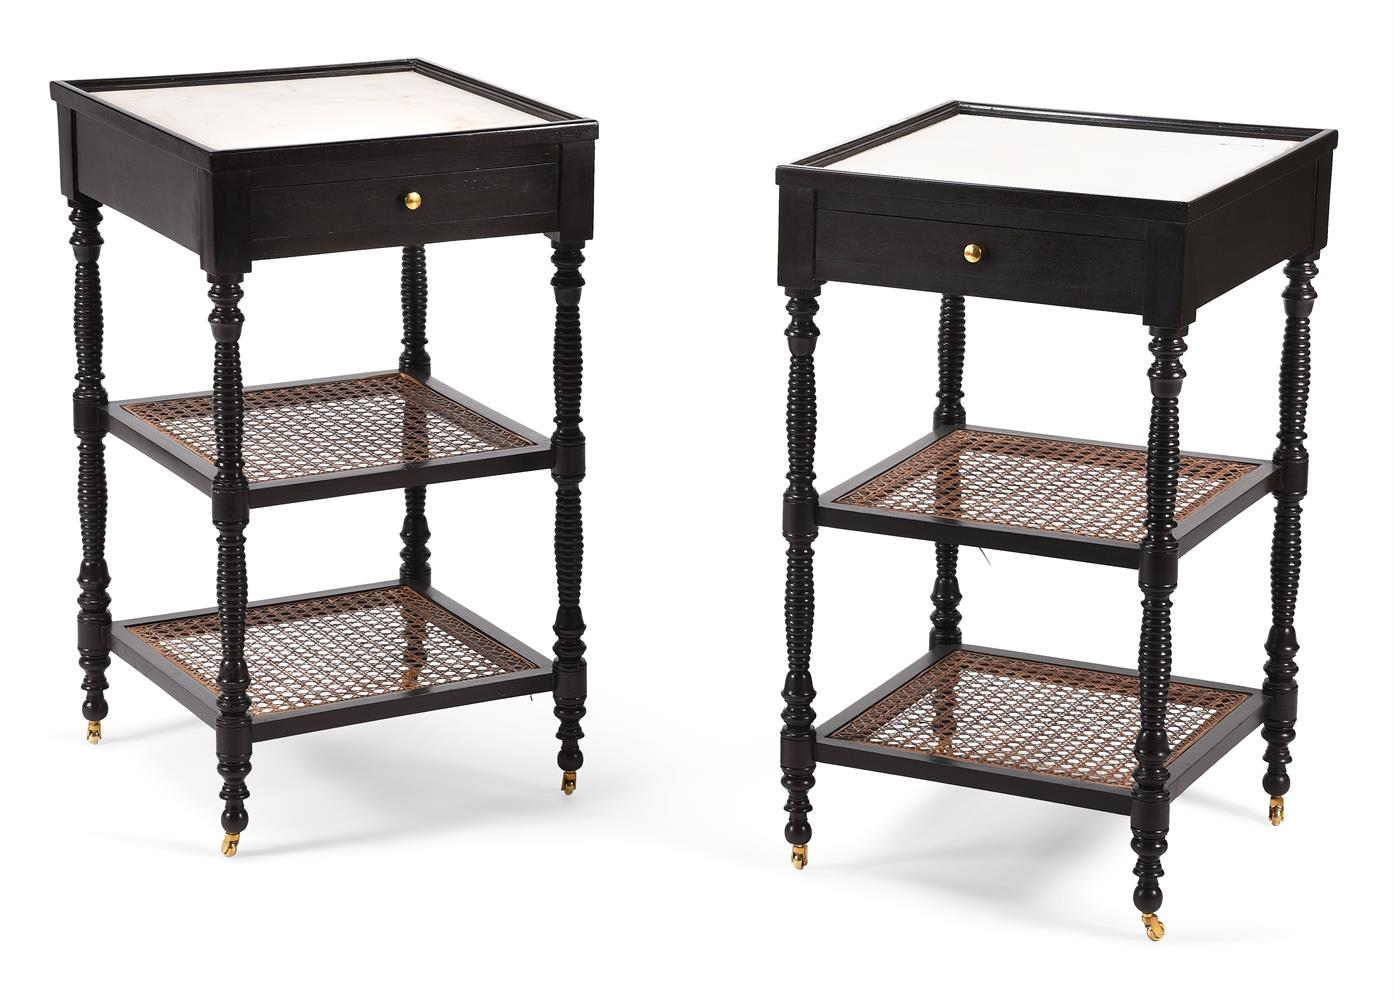 A pair of ebonised bedside tables in early 19th century Anglo-Indian style